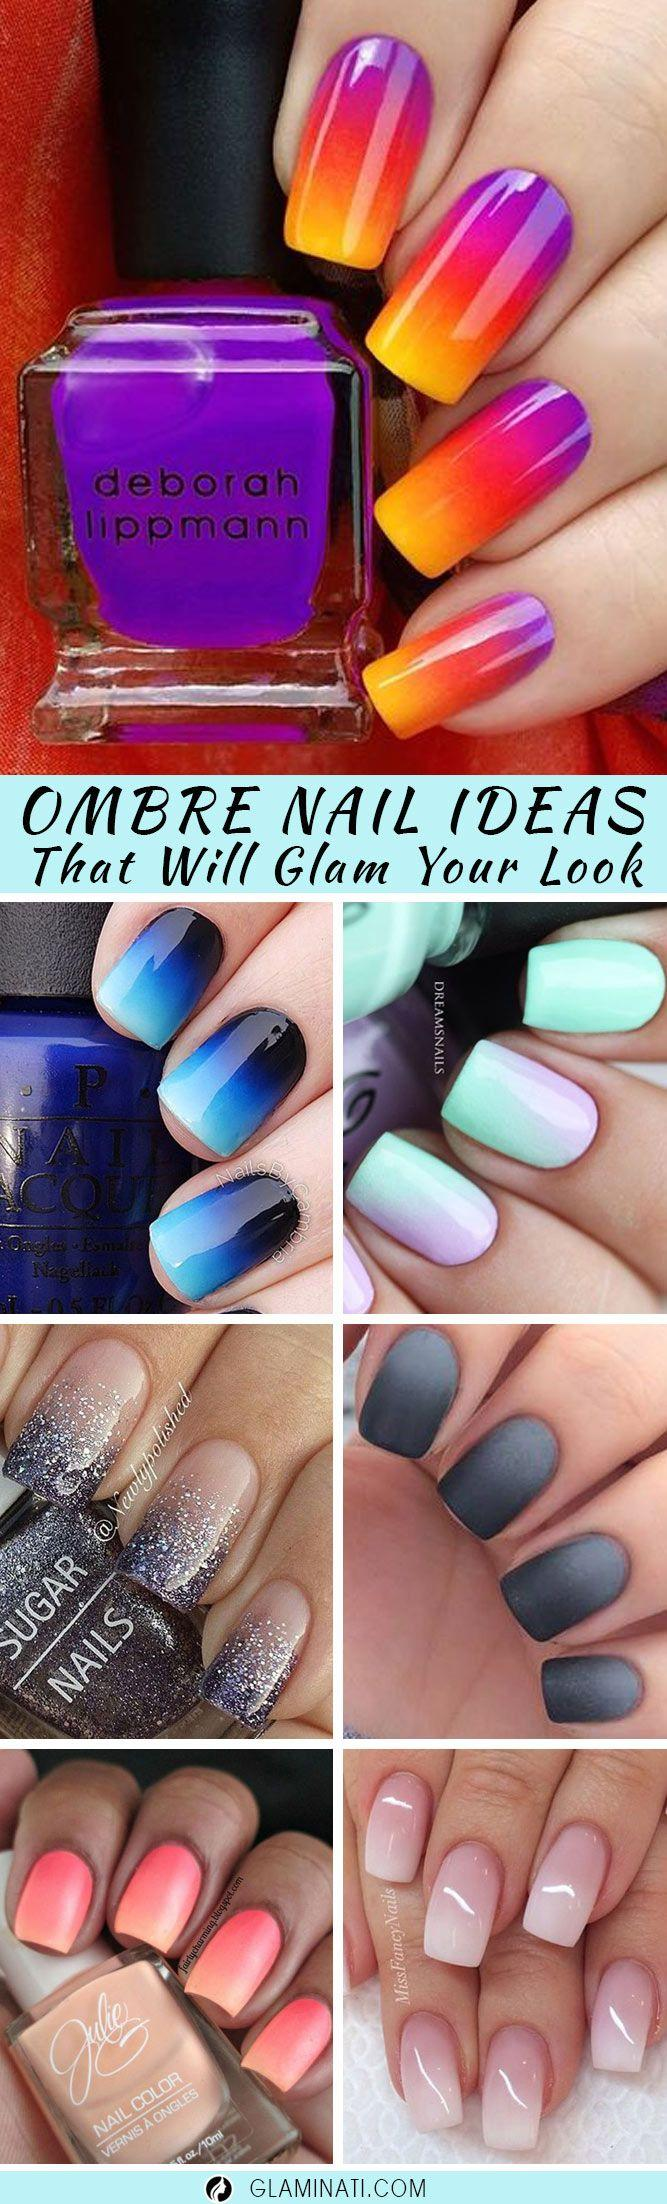 27 Ideas For Ombre Nails That Will Glam Your Look #2853387